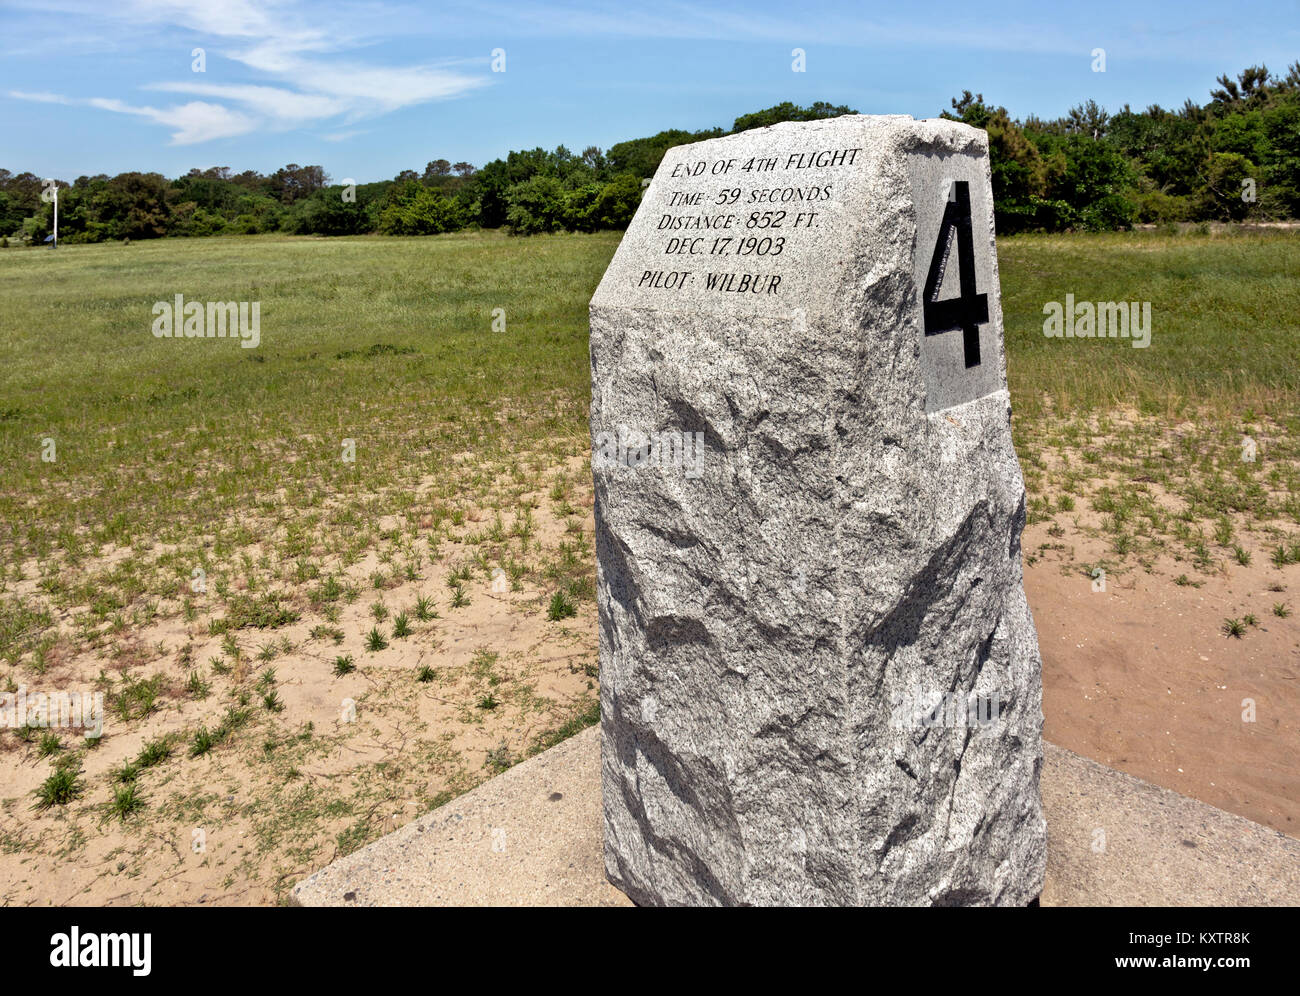 NC01247-00...NORTH CAROLINA - Marker for the 4th successful flight of the Wright brothers airplane at Kitty Hawk. - Stock Image